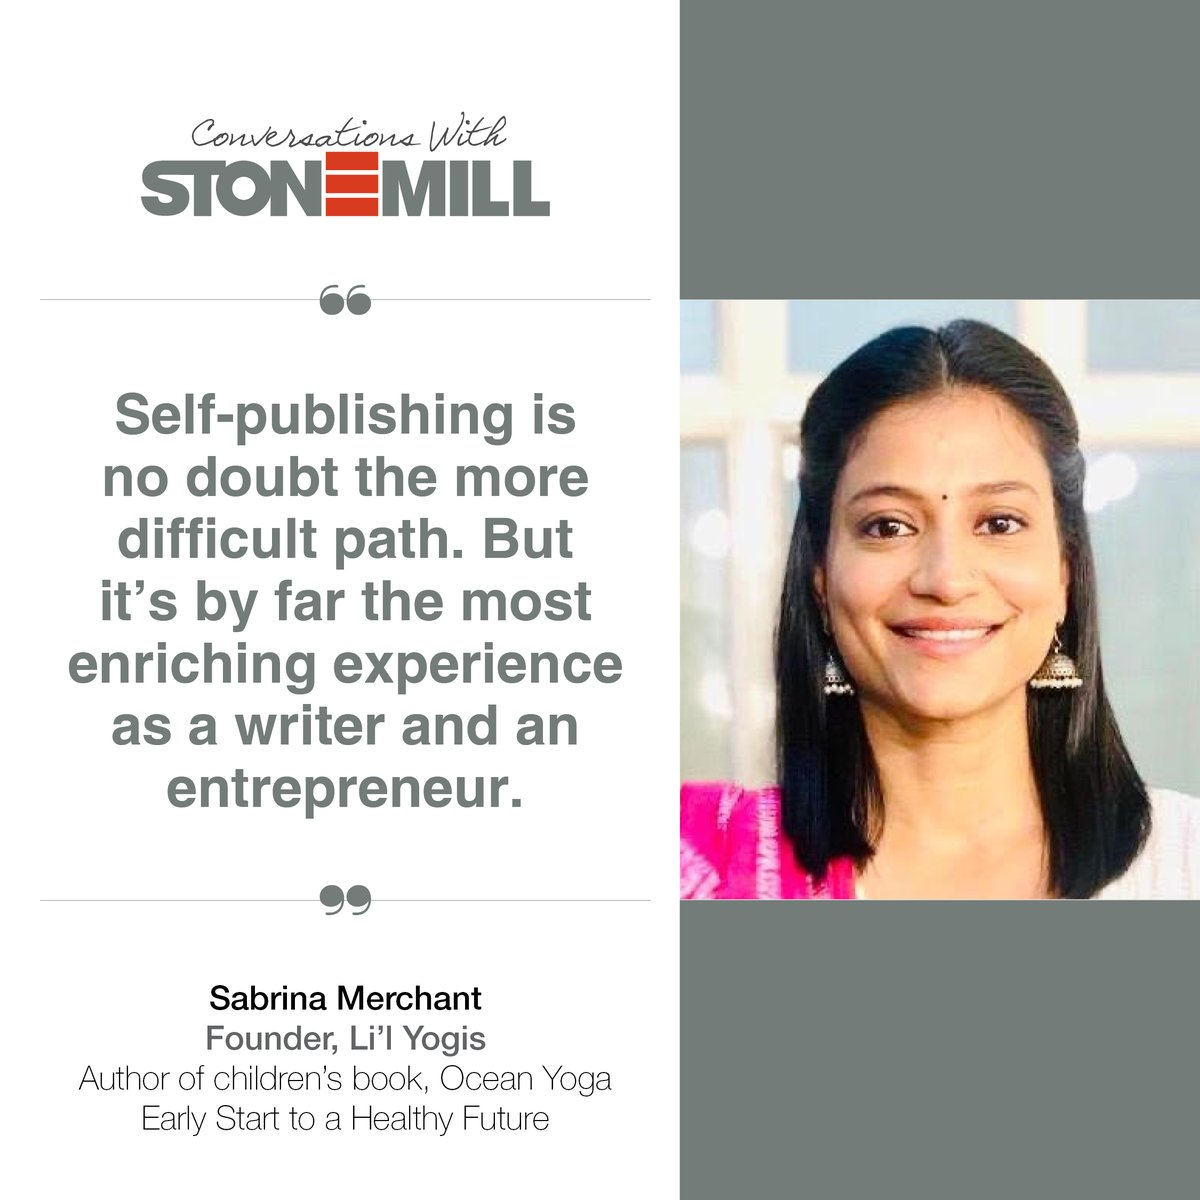 Sabrina Merchant, founder of Li'l Yogis, had a vision of making yoga fun for kids. And she did just that through Ocean Yoga, a #childrensbook on yoga poses.   In #conversationswithstonemill she shares her experience on #selfpublishing her book. Read it on